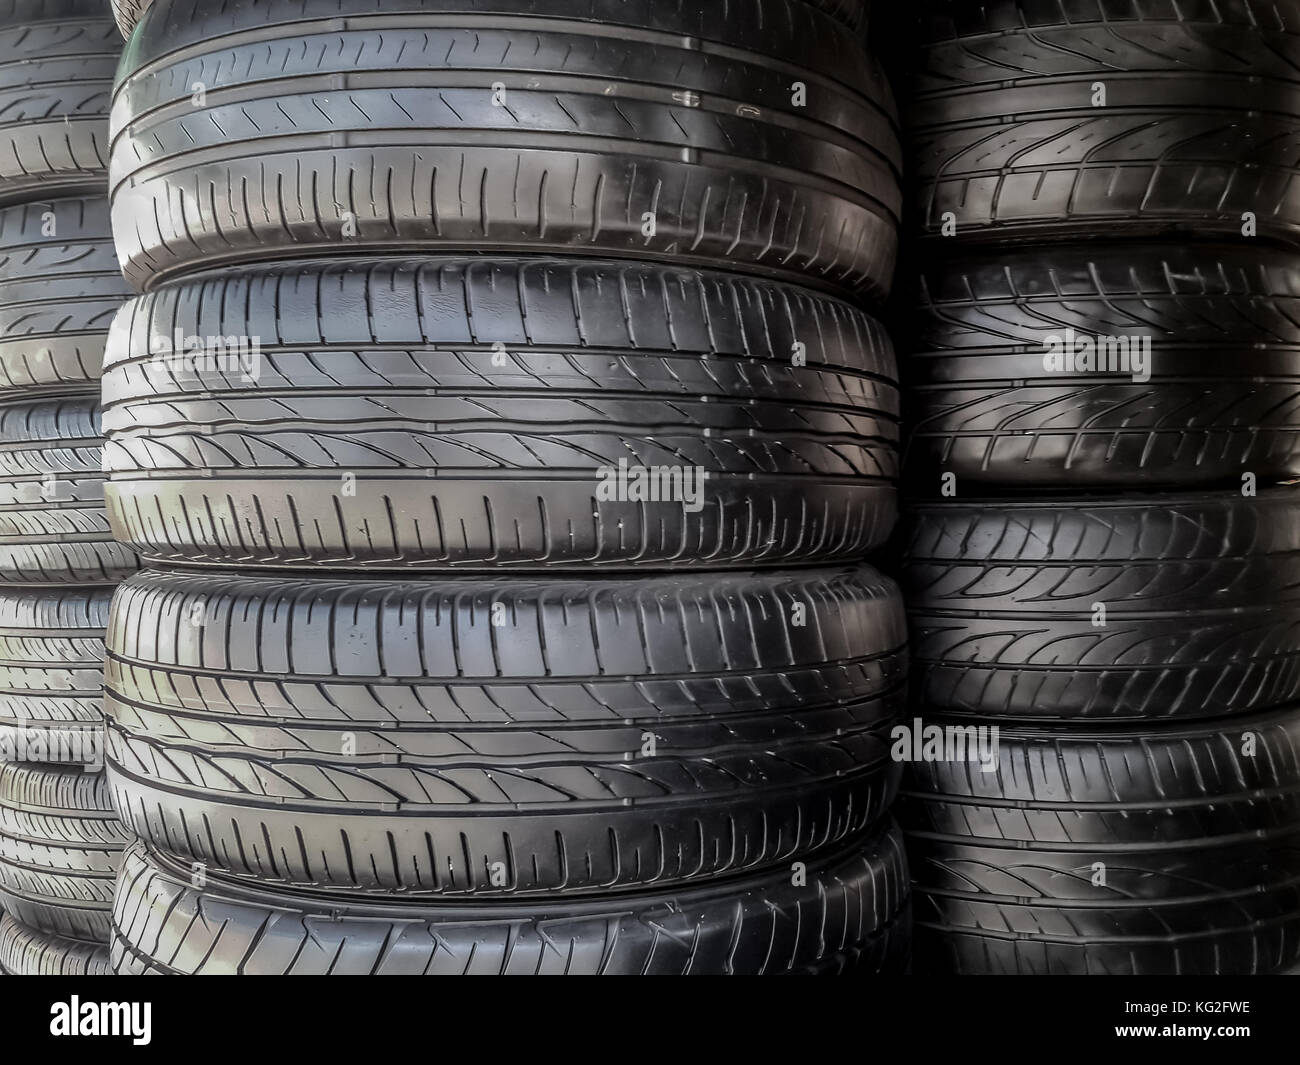 shiny black recapped car tires stack. they are inspected and repair and good to be used in lower cost than new tires. - Stock Image